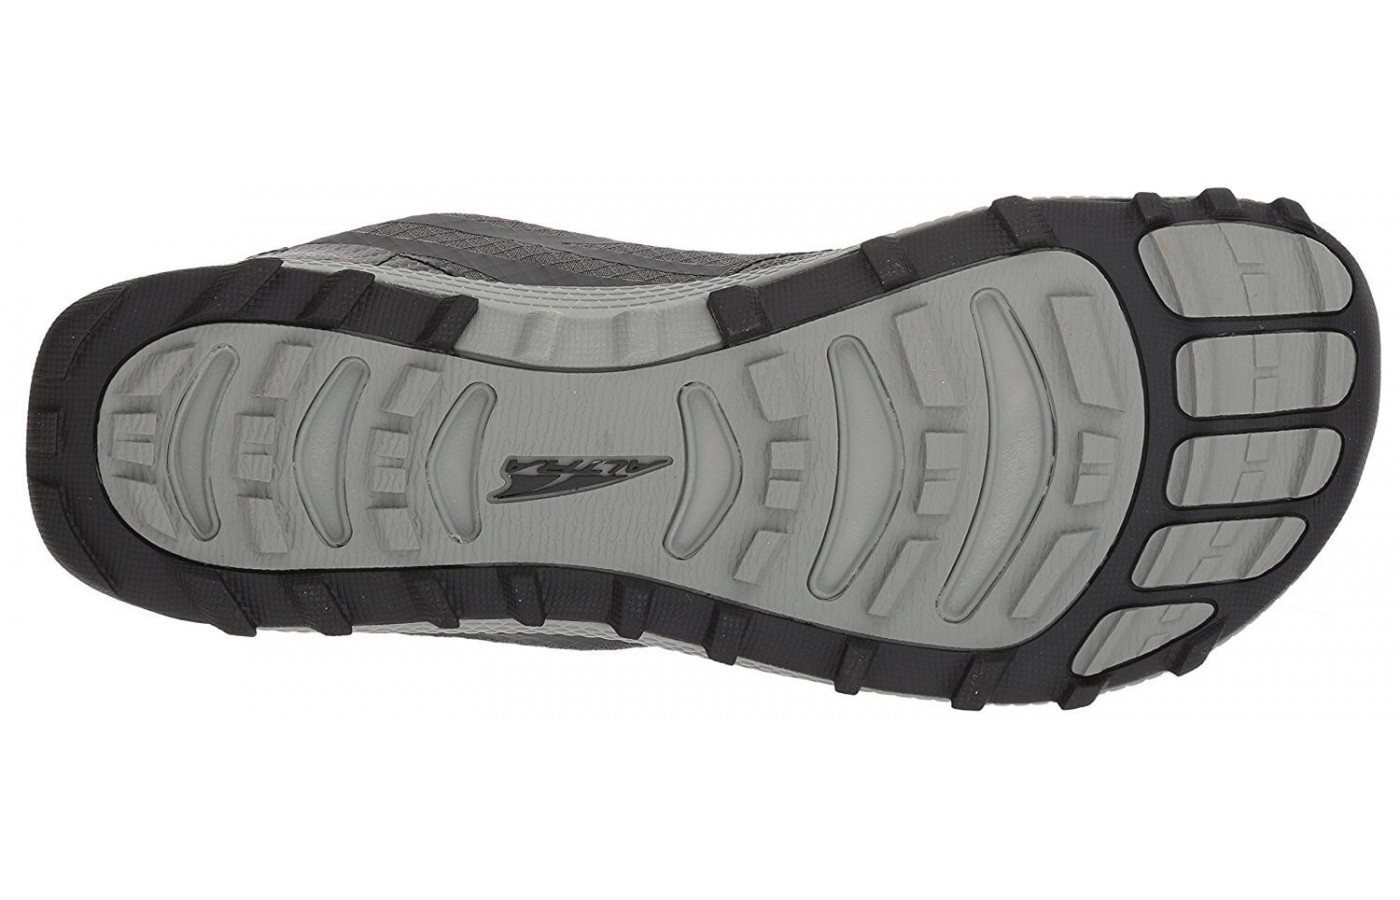 The outsole of the Altra Superior 3.5 uses a TrailClaw design to grip the ground like a bear's paw.